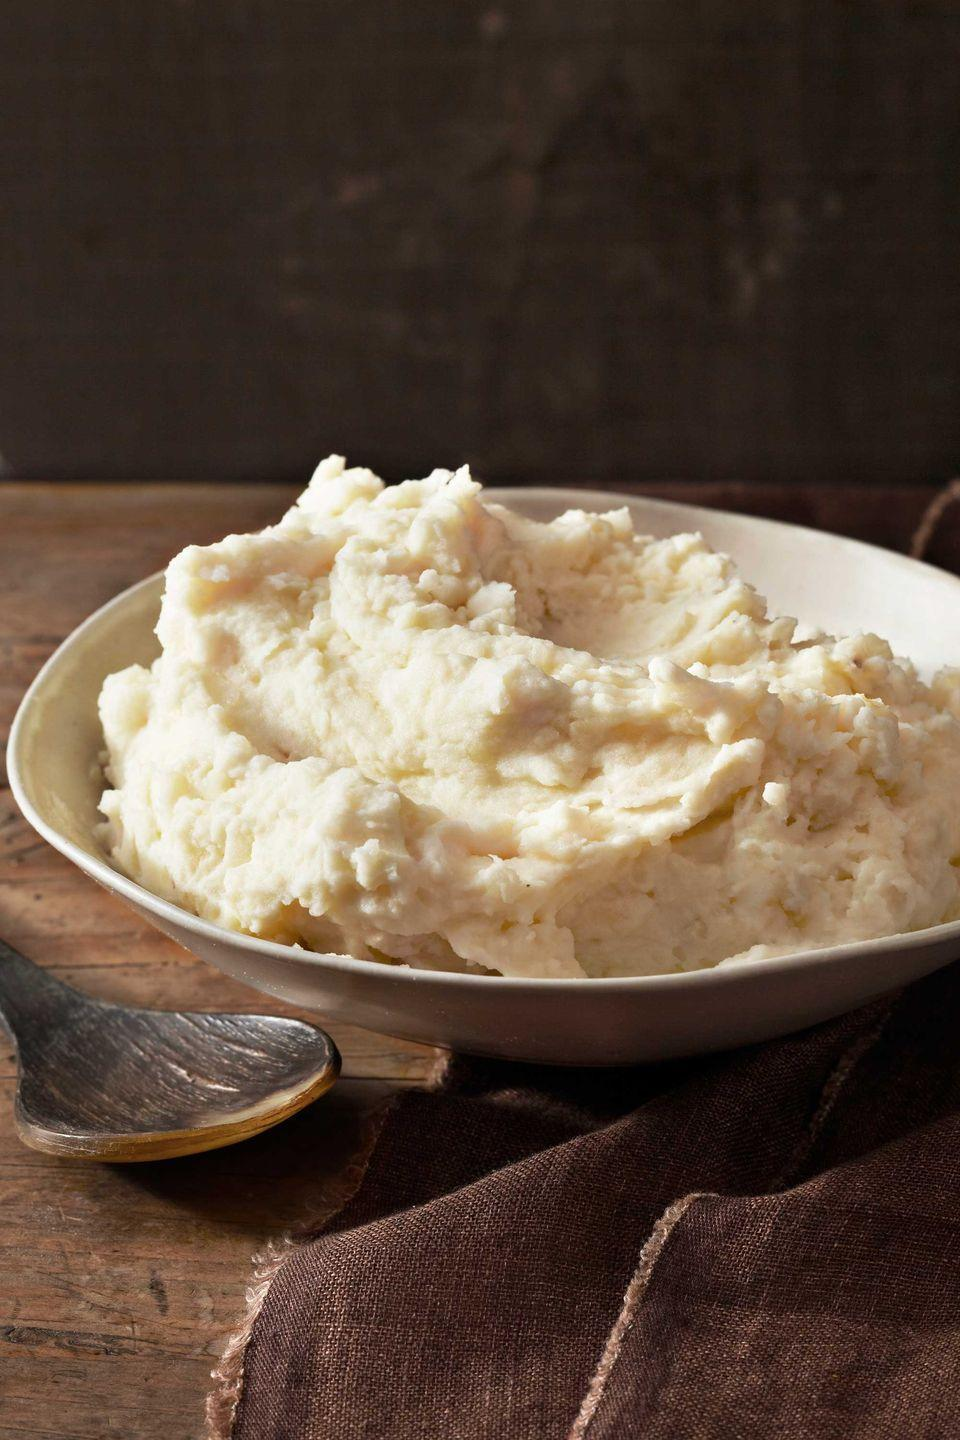 "<p>The key to these perfectly creamy mashed potatoes is not overstirring them once the half-and-half has been added.</p><p><strong><a href=""https://www.countryliving.com/food-drinks/recipes/a3570/the-ultimate-mashed-potatoes-recipe-clv0211/"" rel=""nofollow noopener"" target=""_blank"" data-ylk=""slk:Get the recipe"" class=""link rapid-noclick-resp"">Get the recipe</a>.</strong></p>"